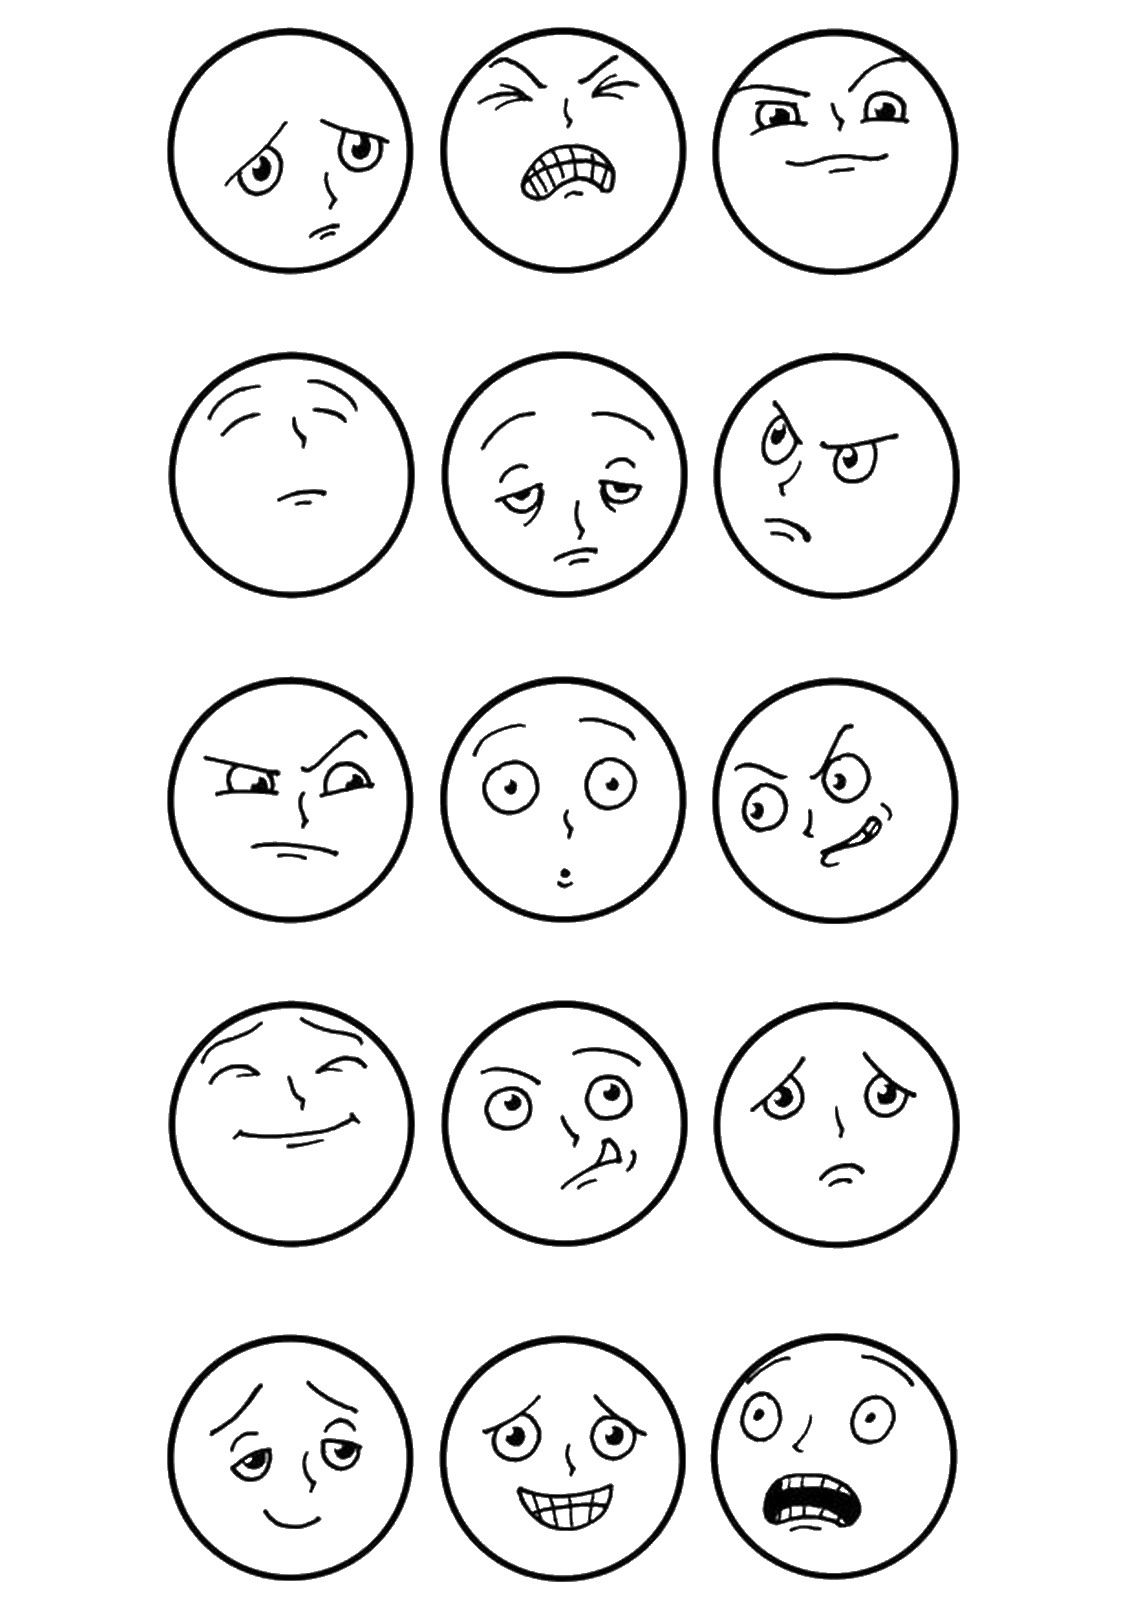 Top 20 Free Printable Emotions